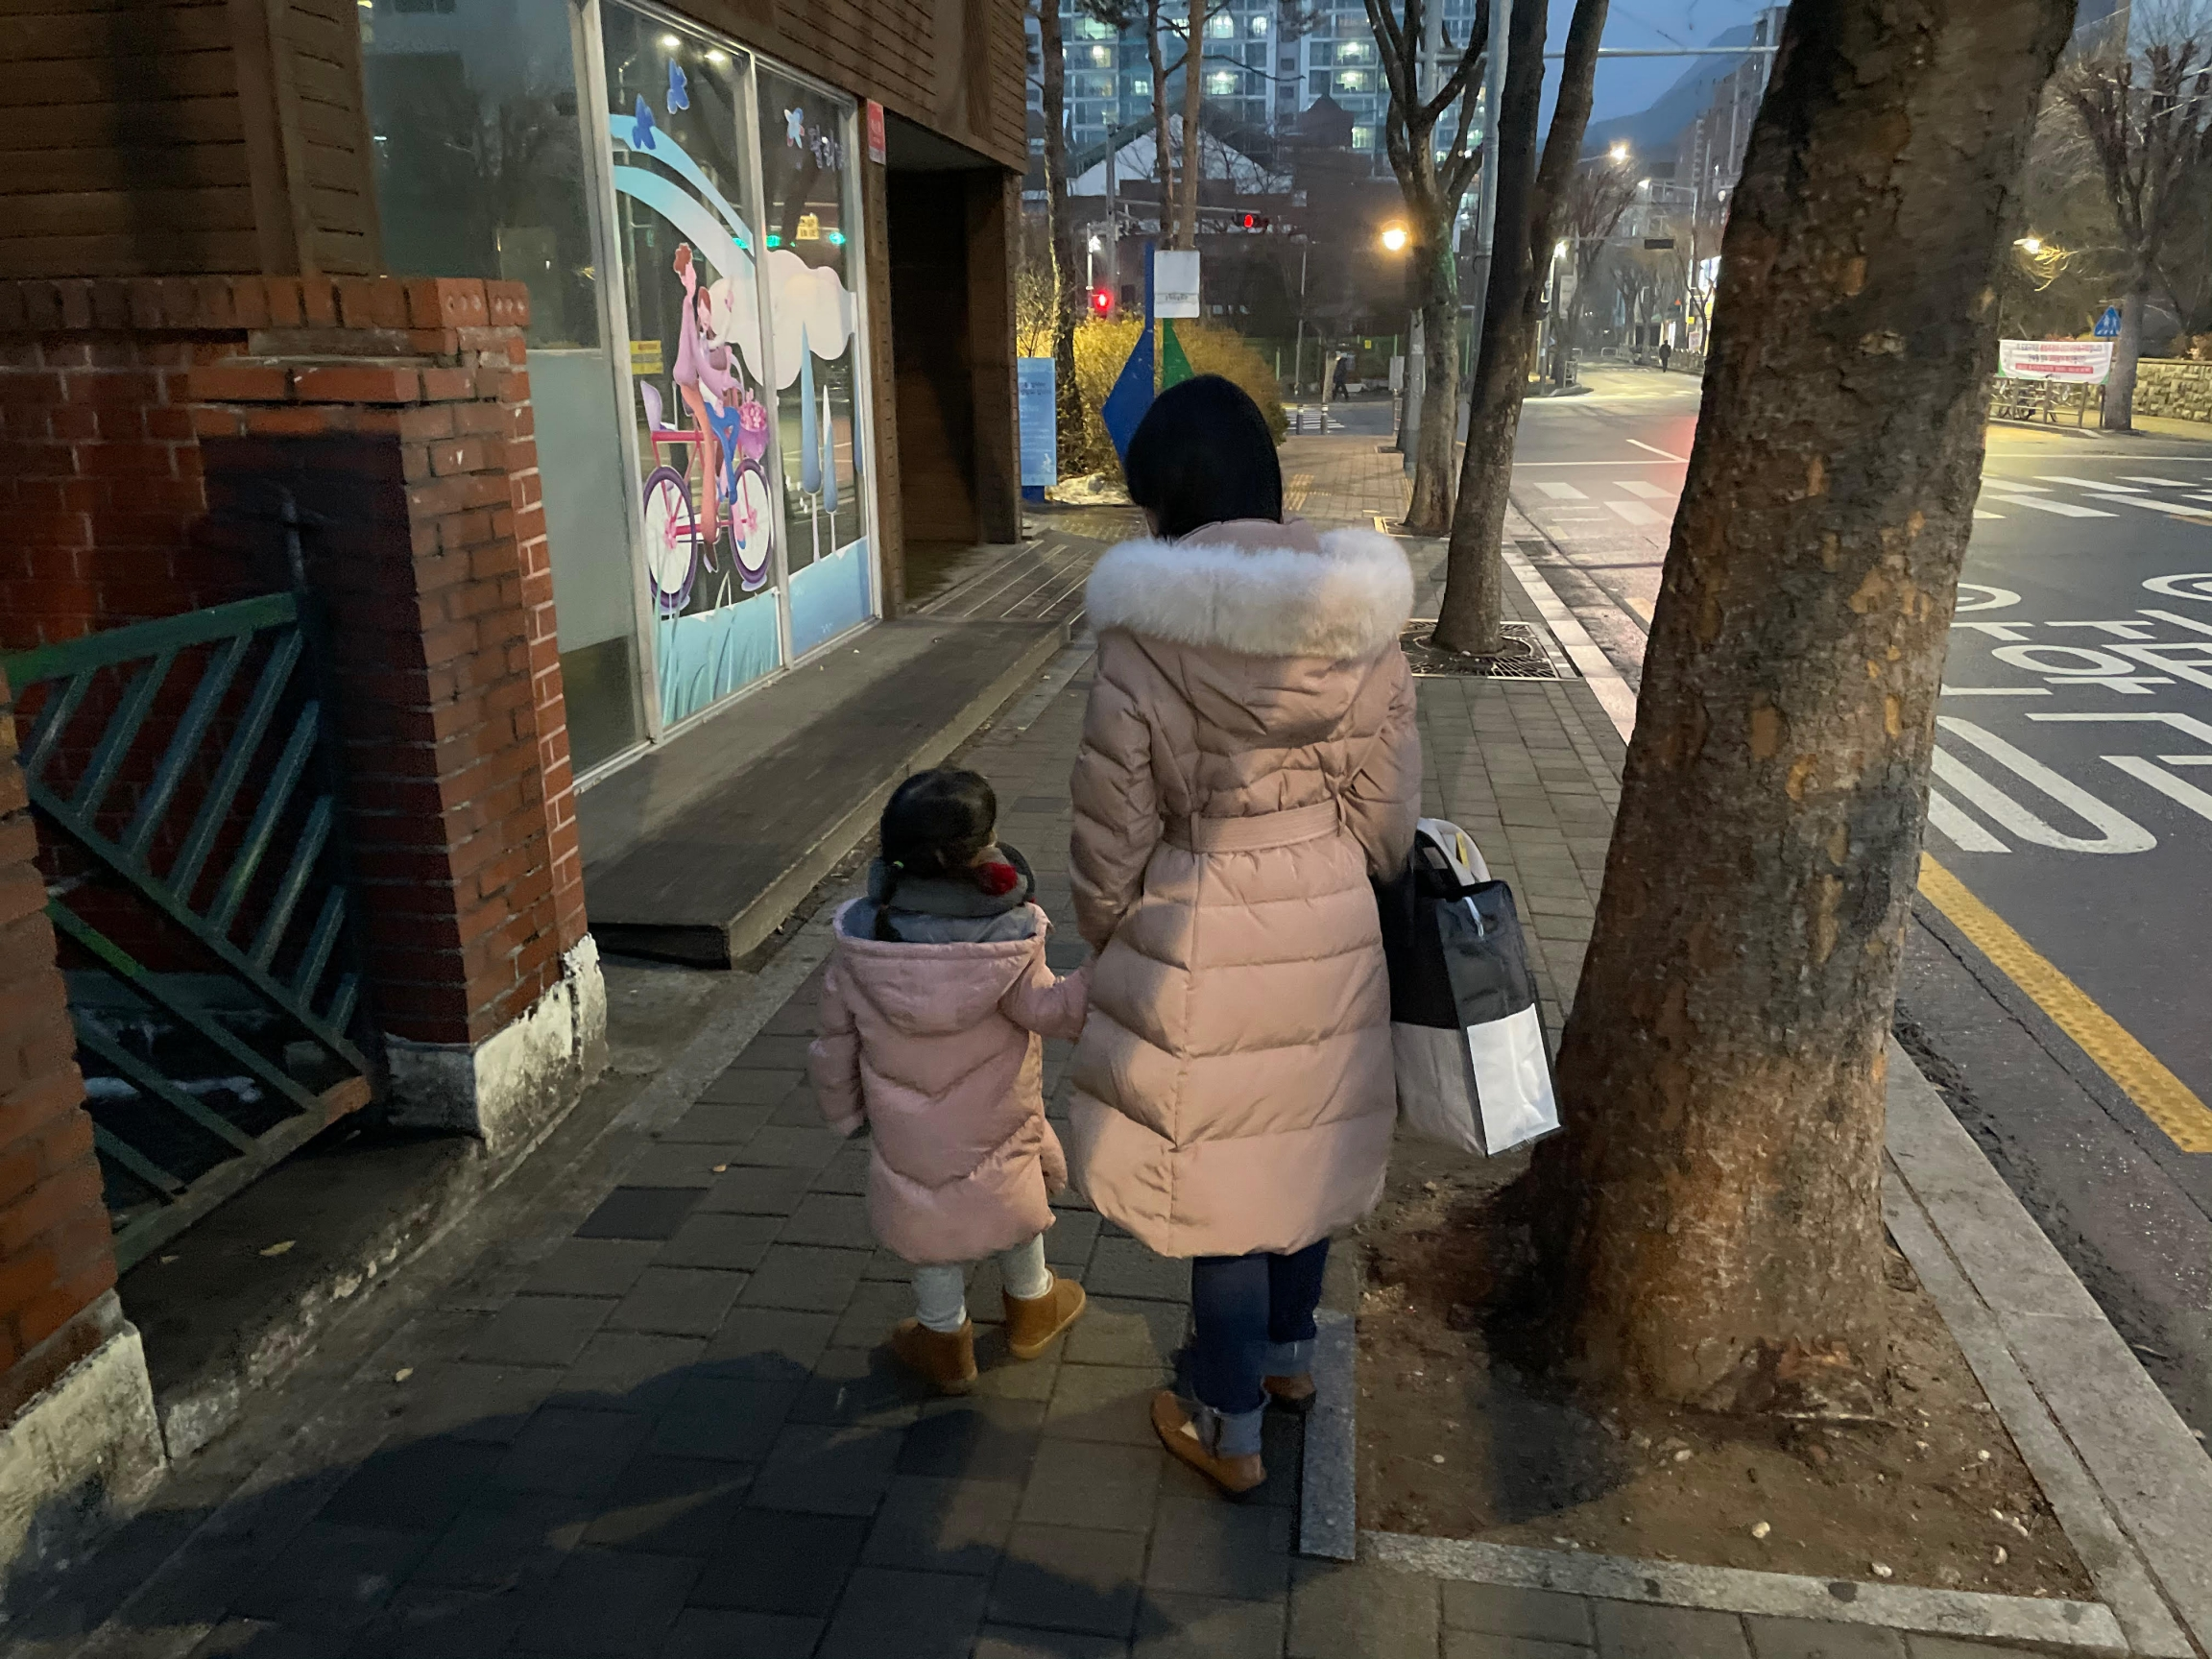 Kim, an advocate at the Korean Unwed Mothers Families' Association, a support group in Seoul, South Korea, walks with her daughter. She asked that her full name not be used due to the stigma associated with being a single mother.